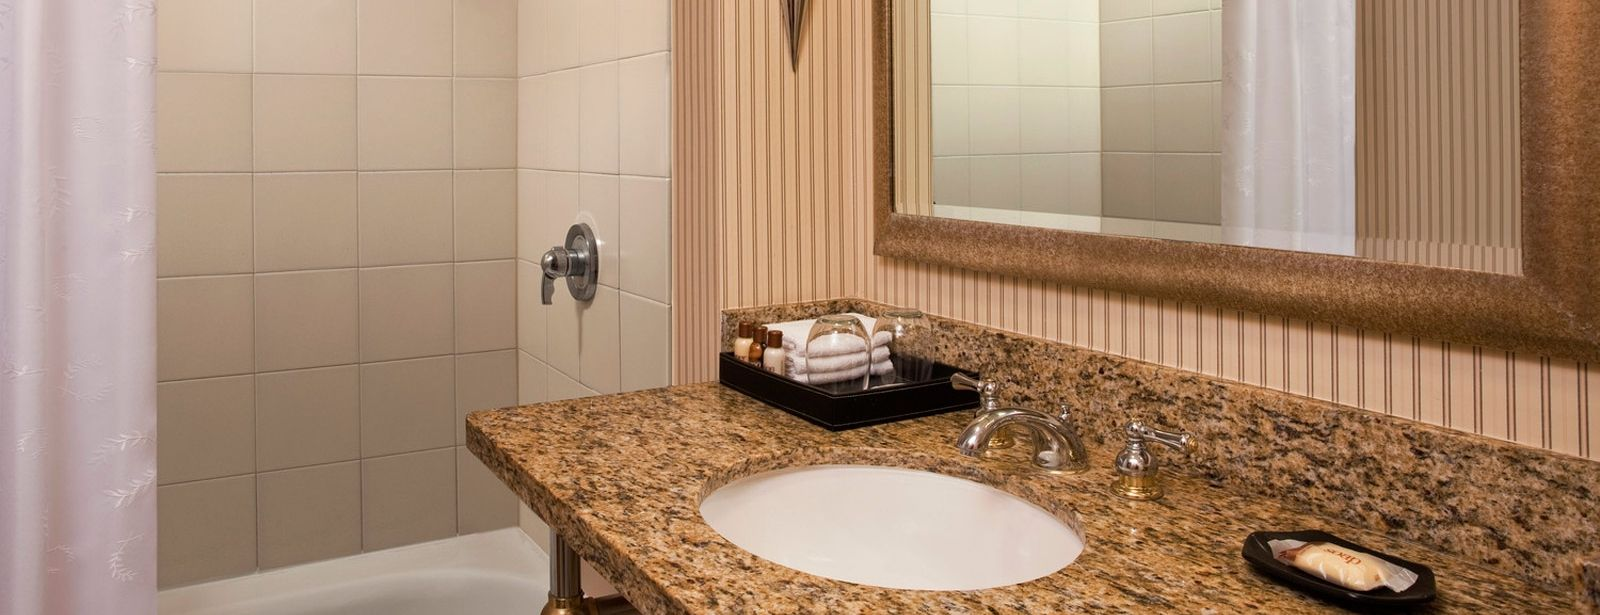 Atlantic City Accommodation | Guest Bathroom